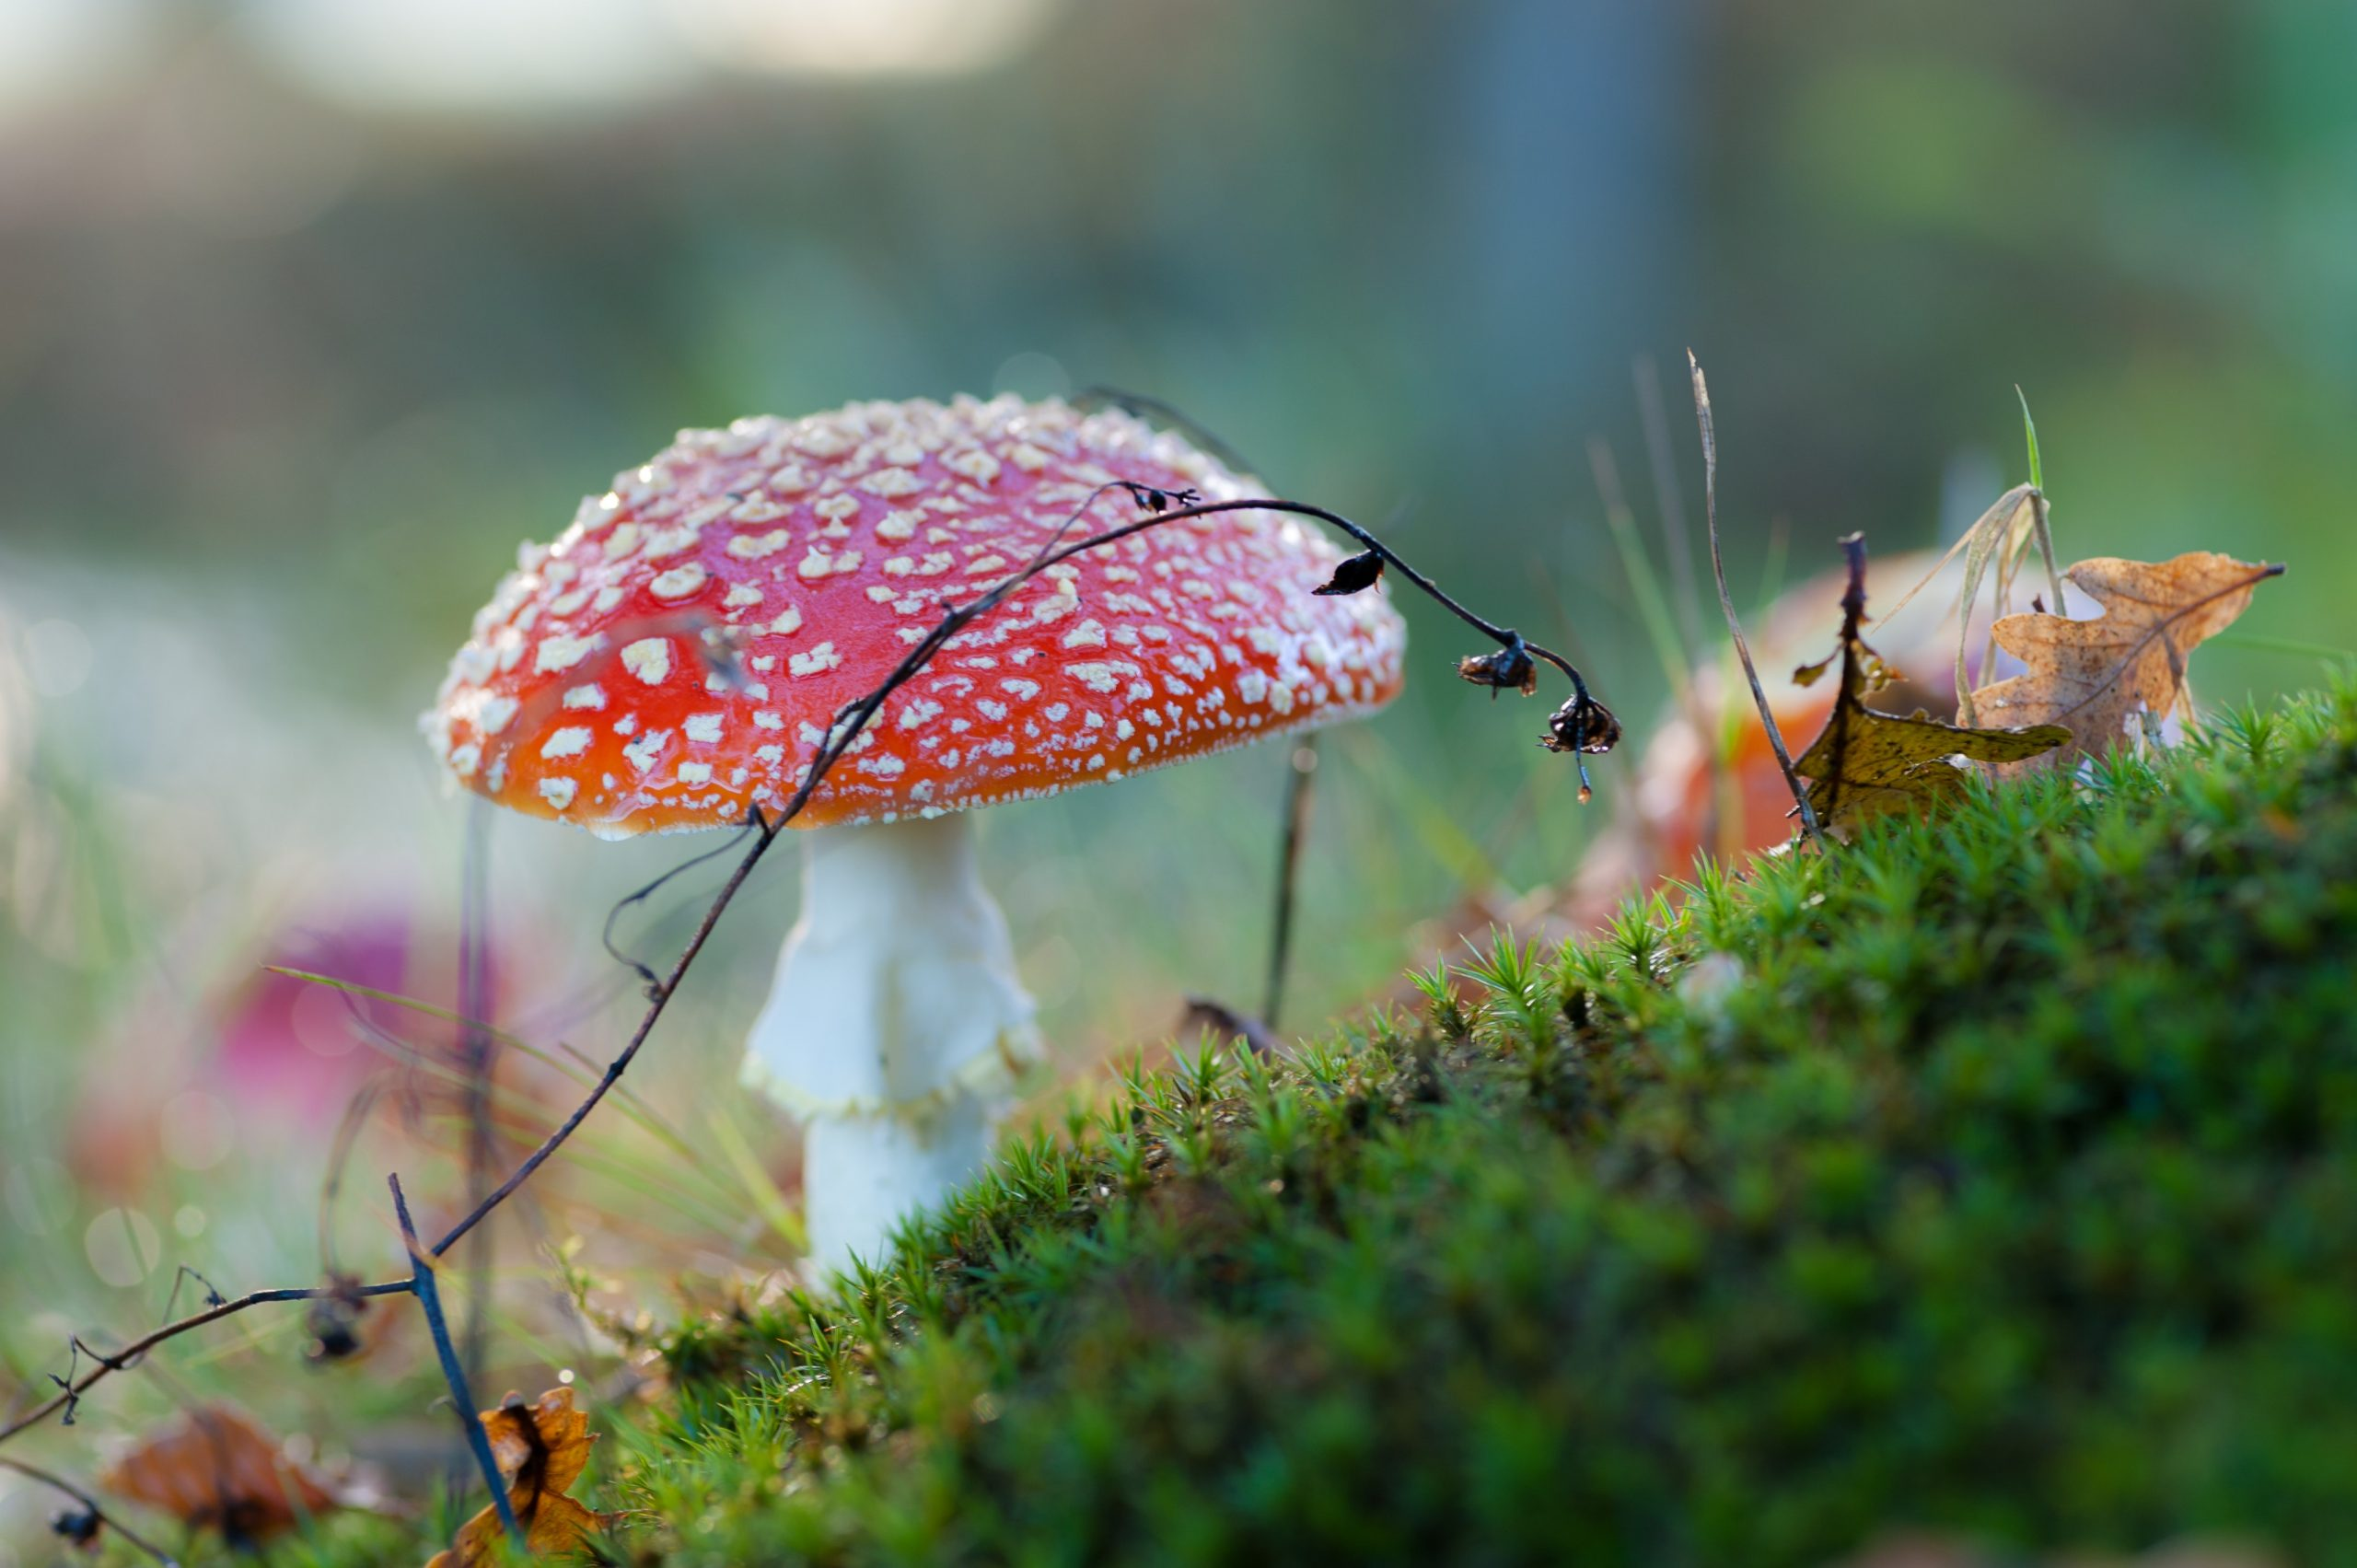 Red poison mushroom in the midground with soft focus moss in the foreground